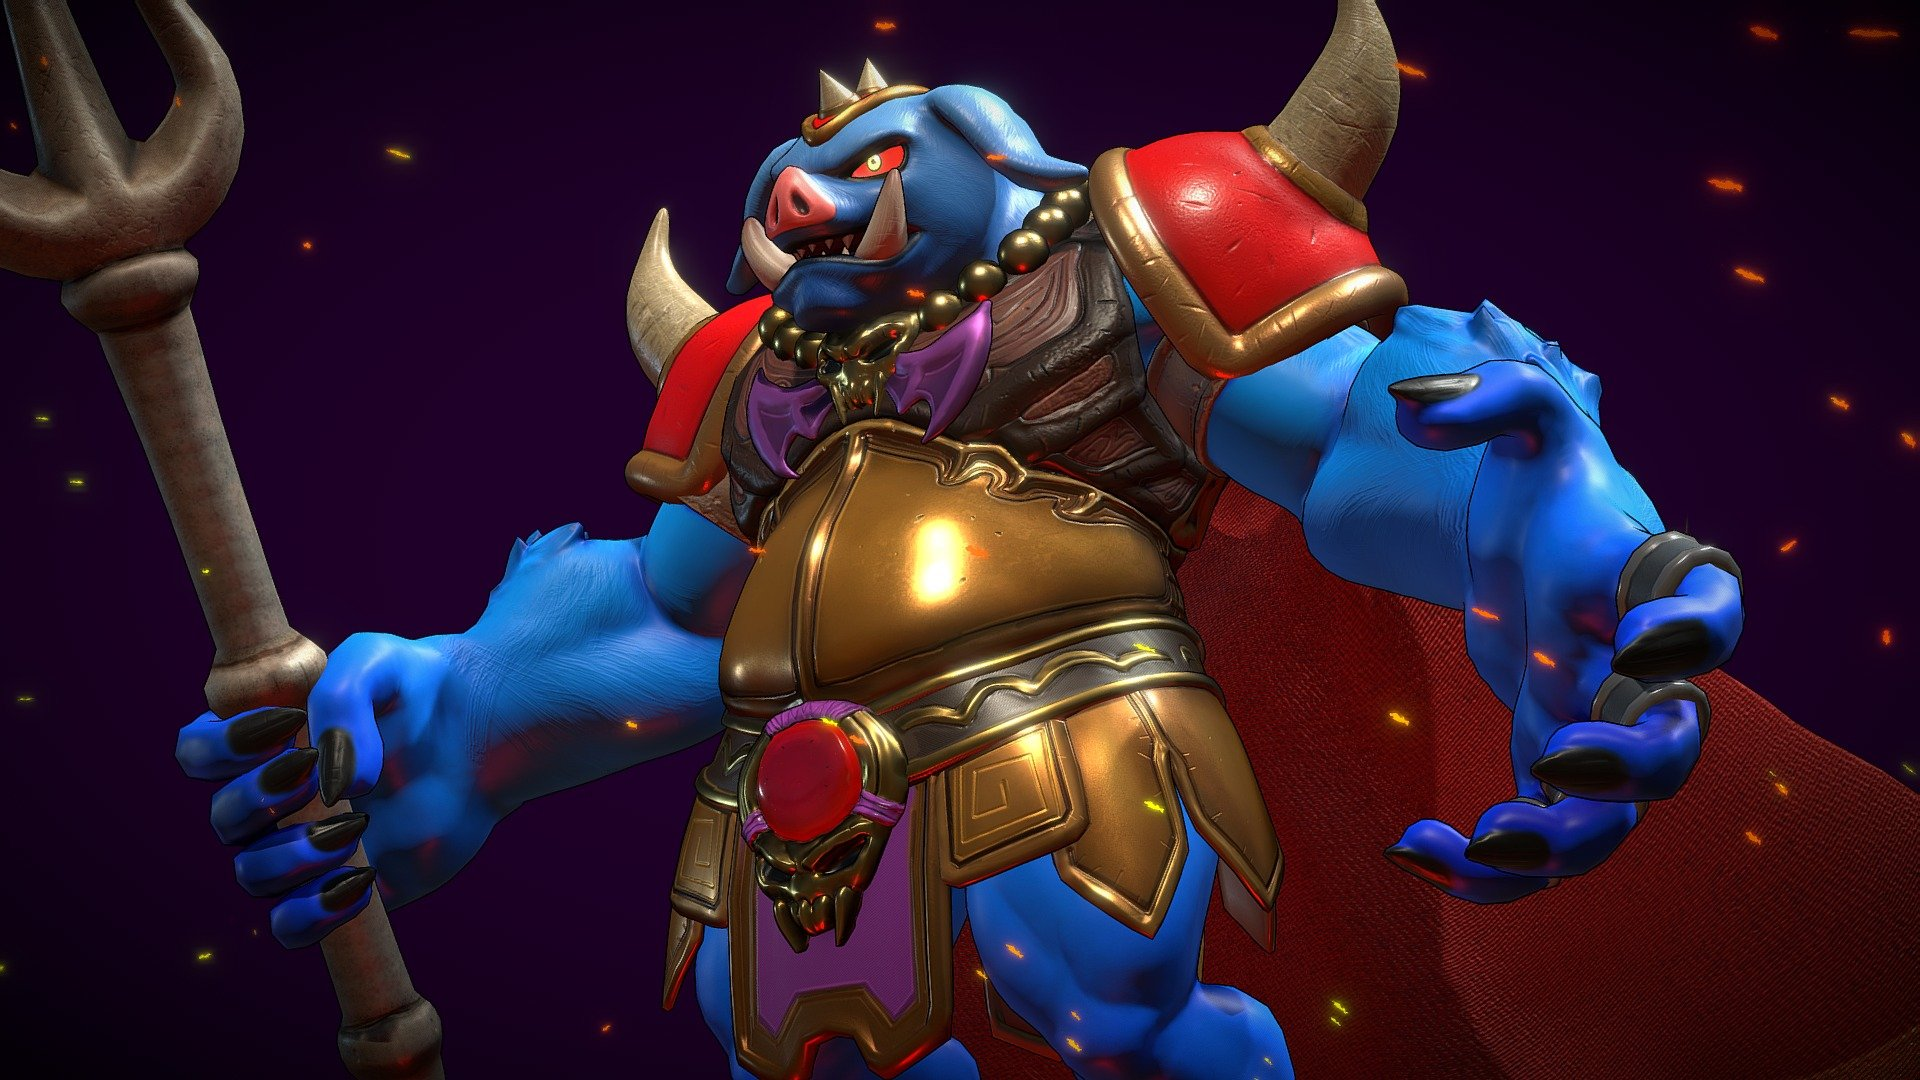 Ganon Oracle Of Ages Retrogasm2019 3d Model By